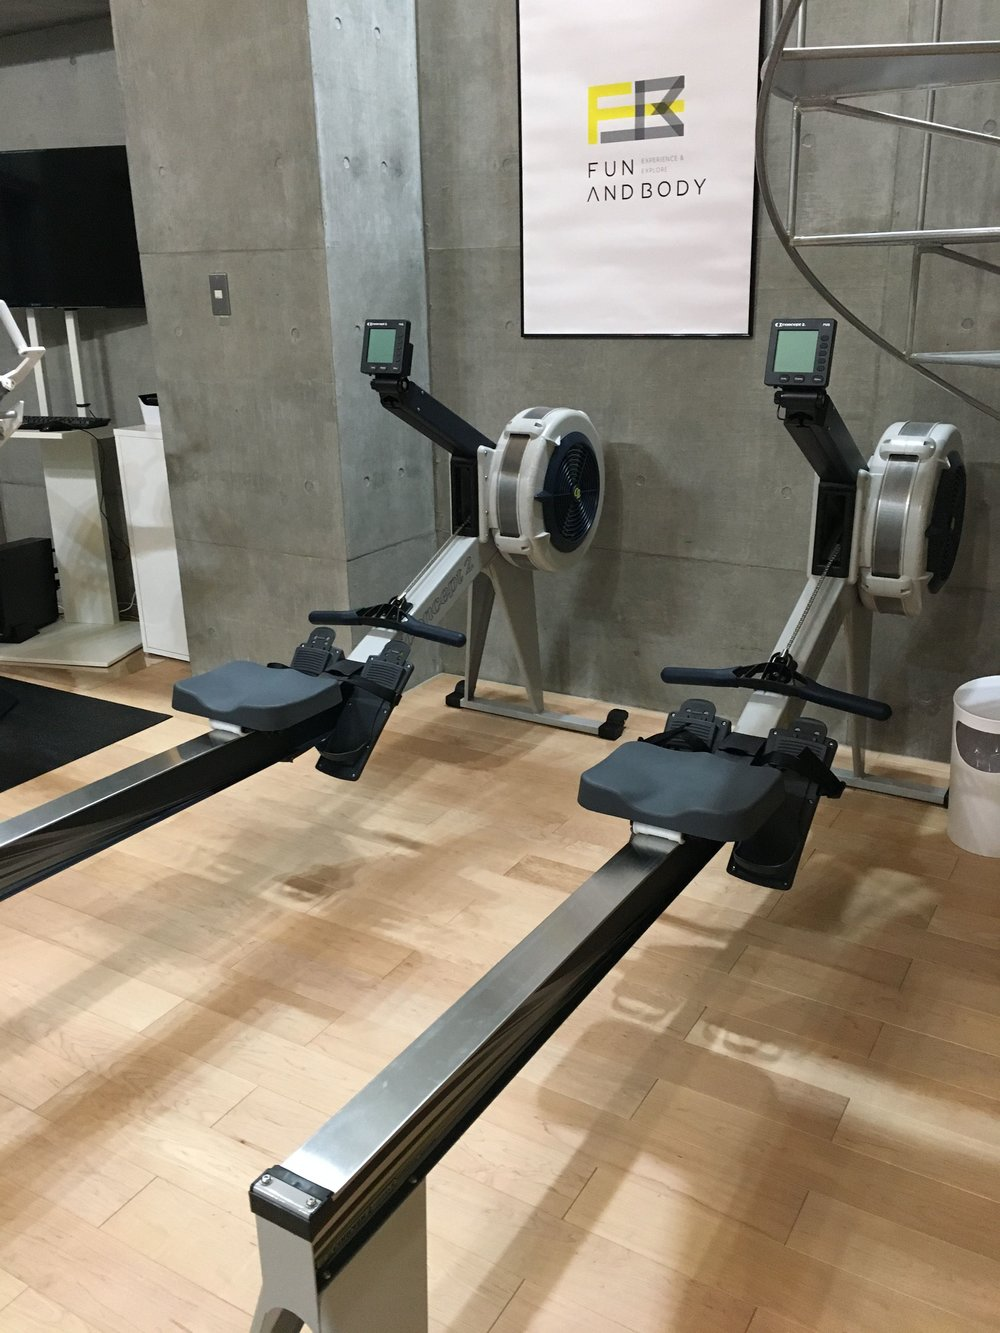 Rowing machines at Body and Fun (photo from their website).